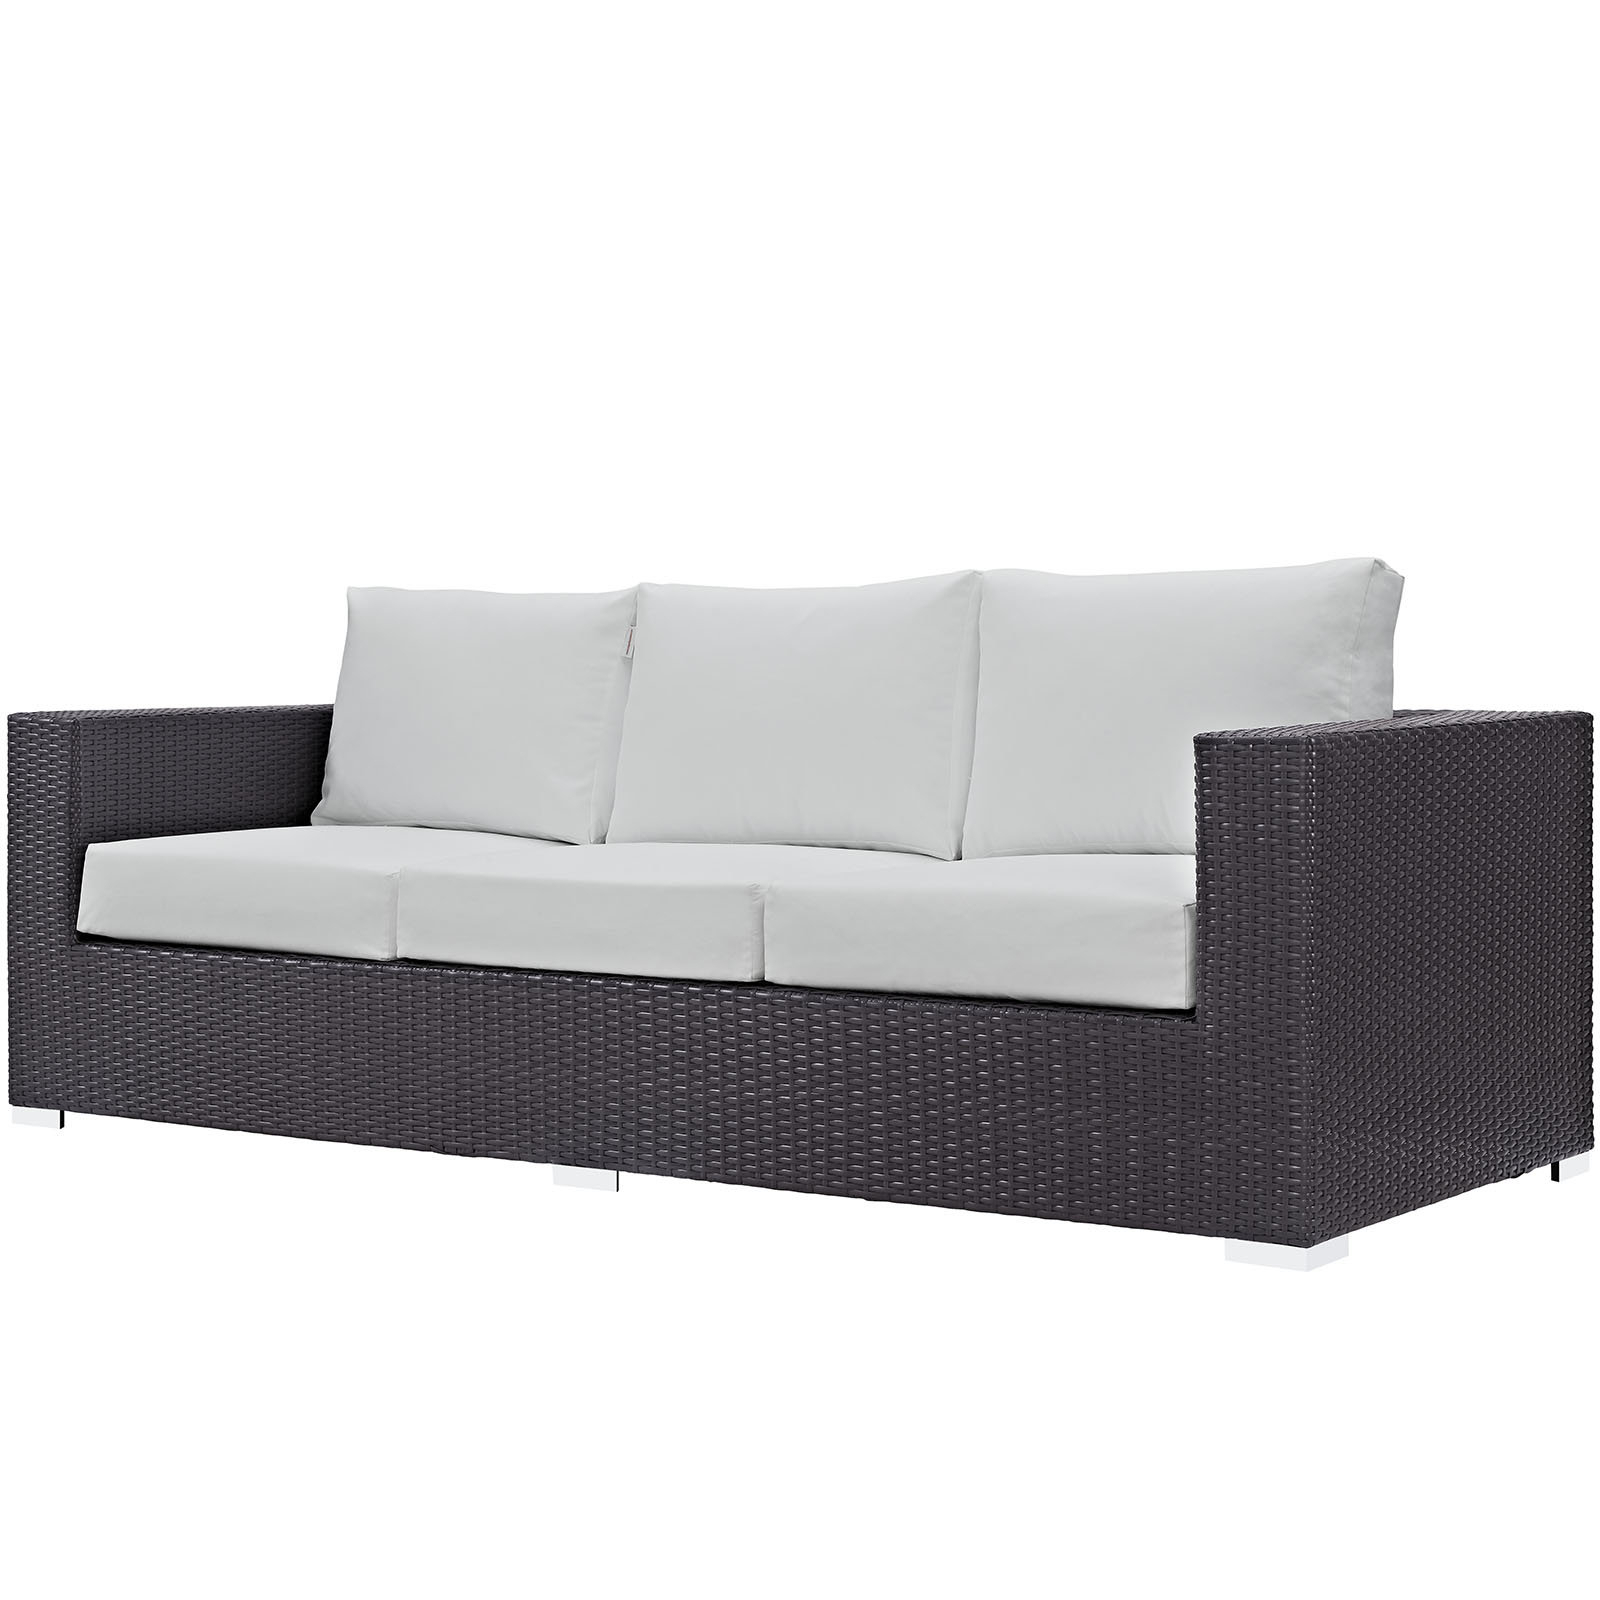 Loggins Patio Sofas With Cushions With Regard To Trendy Brentwood Patio Sofa With Cushions & Reviews (View 12 of 20)